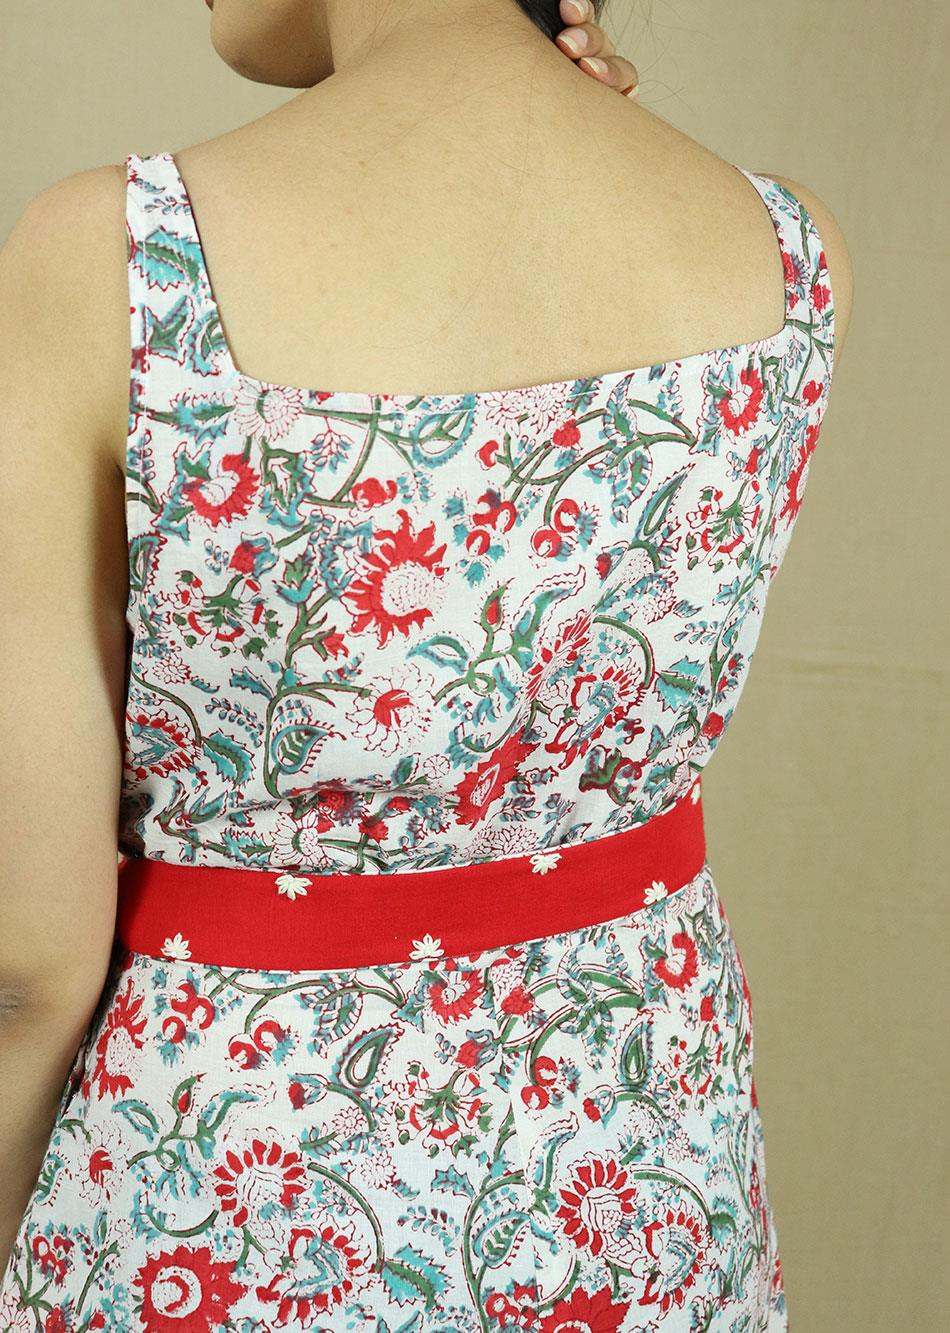 THE ARUSHA DRESS  (with Embroidered Belt)  By Jovi Fashion